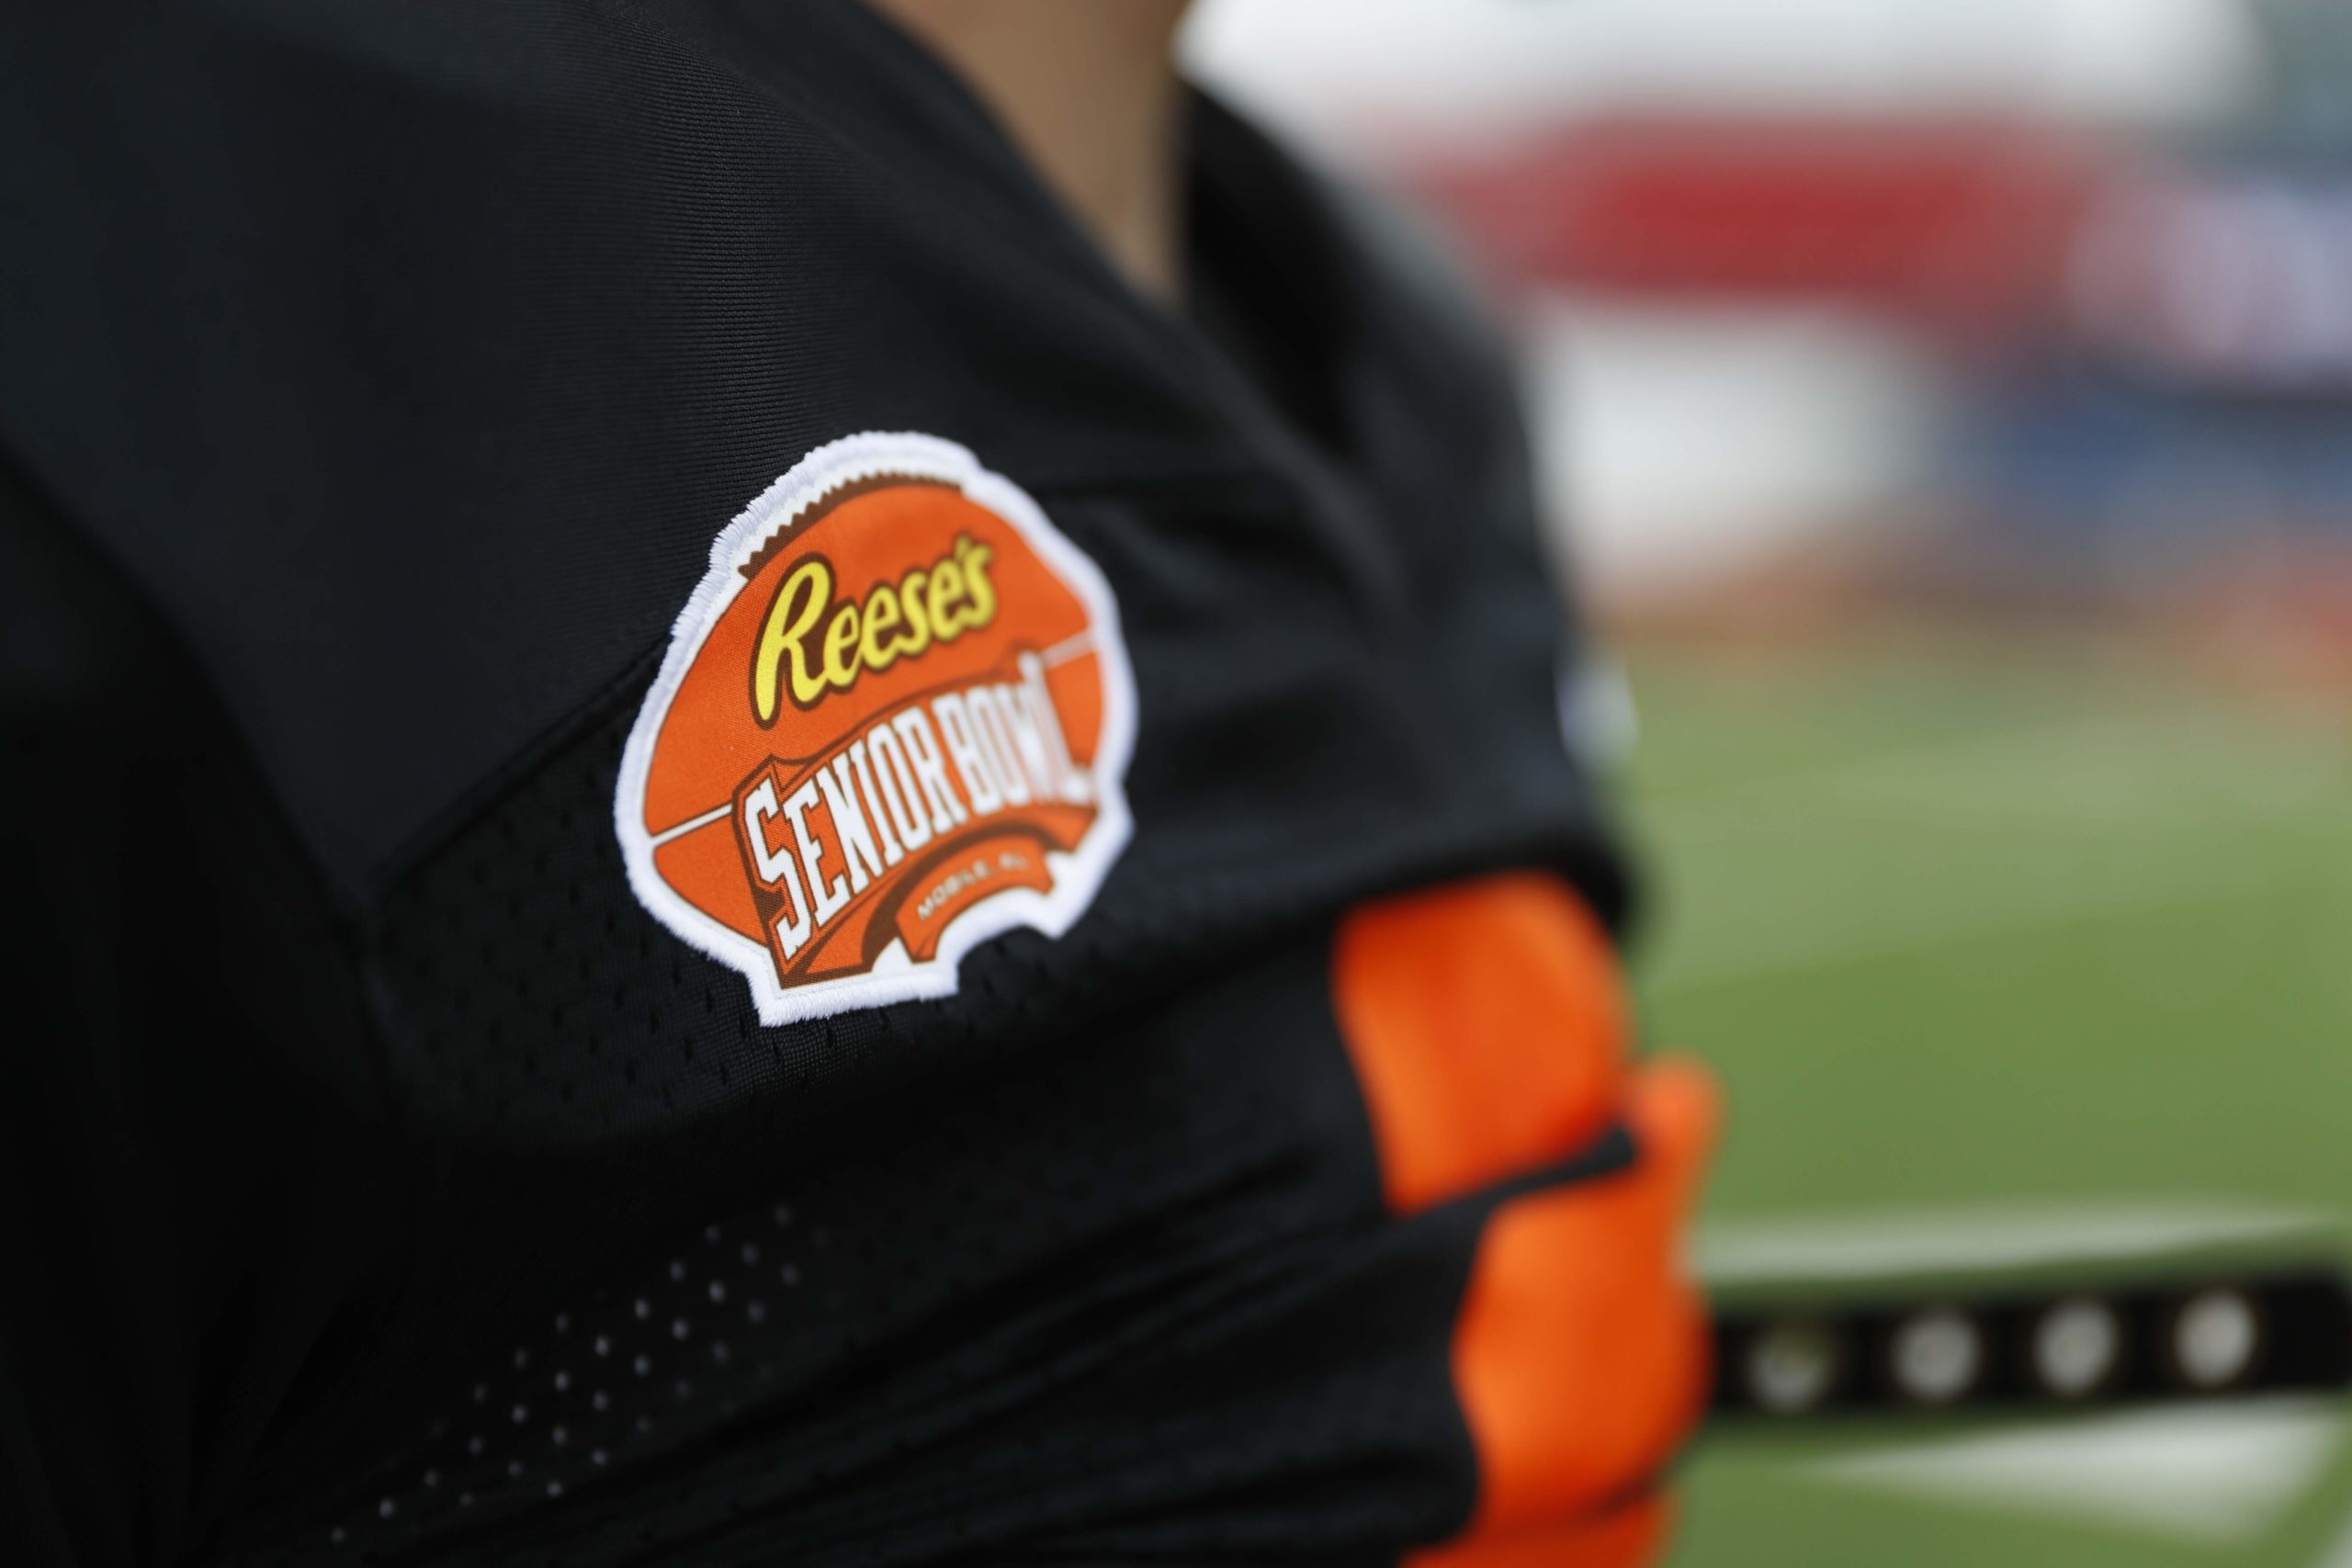 Senior Bowl Storylines. Day 1 Under the Spotlight